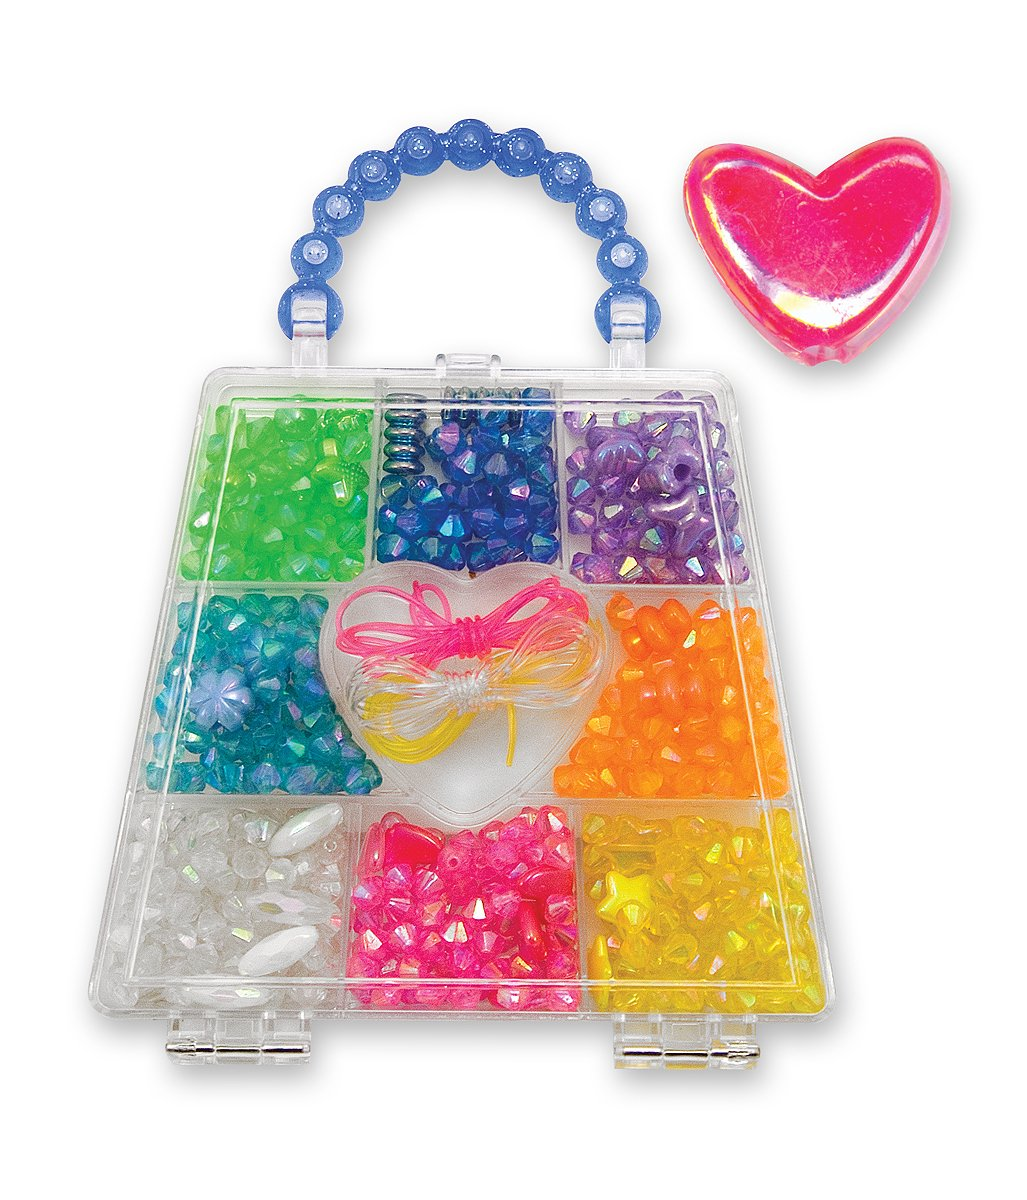 Melissa & Doug Rainbow Crystals Bead Set Over 500 Beads 4270